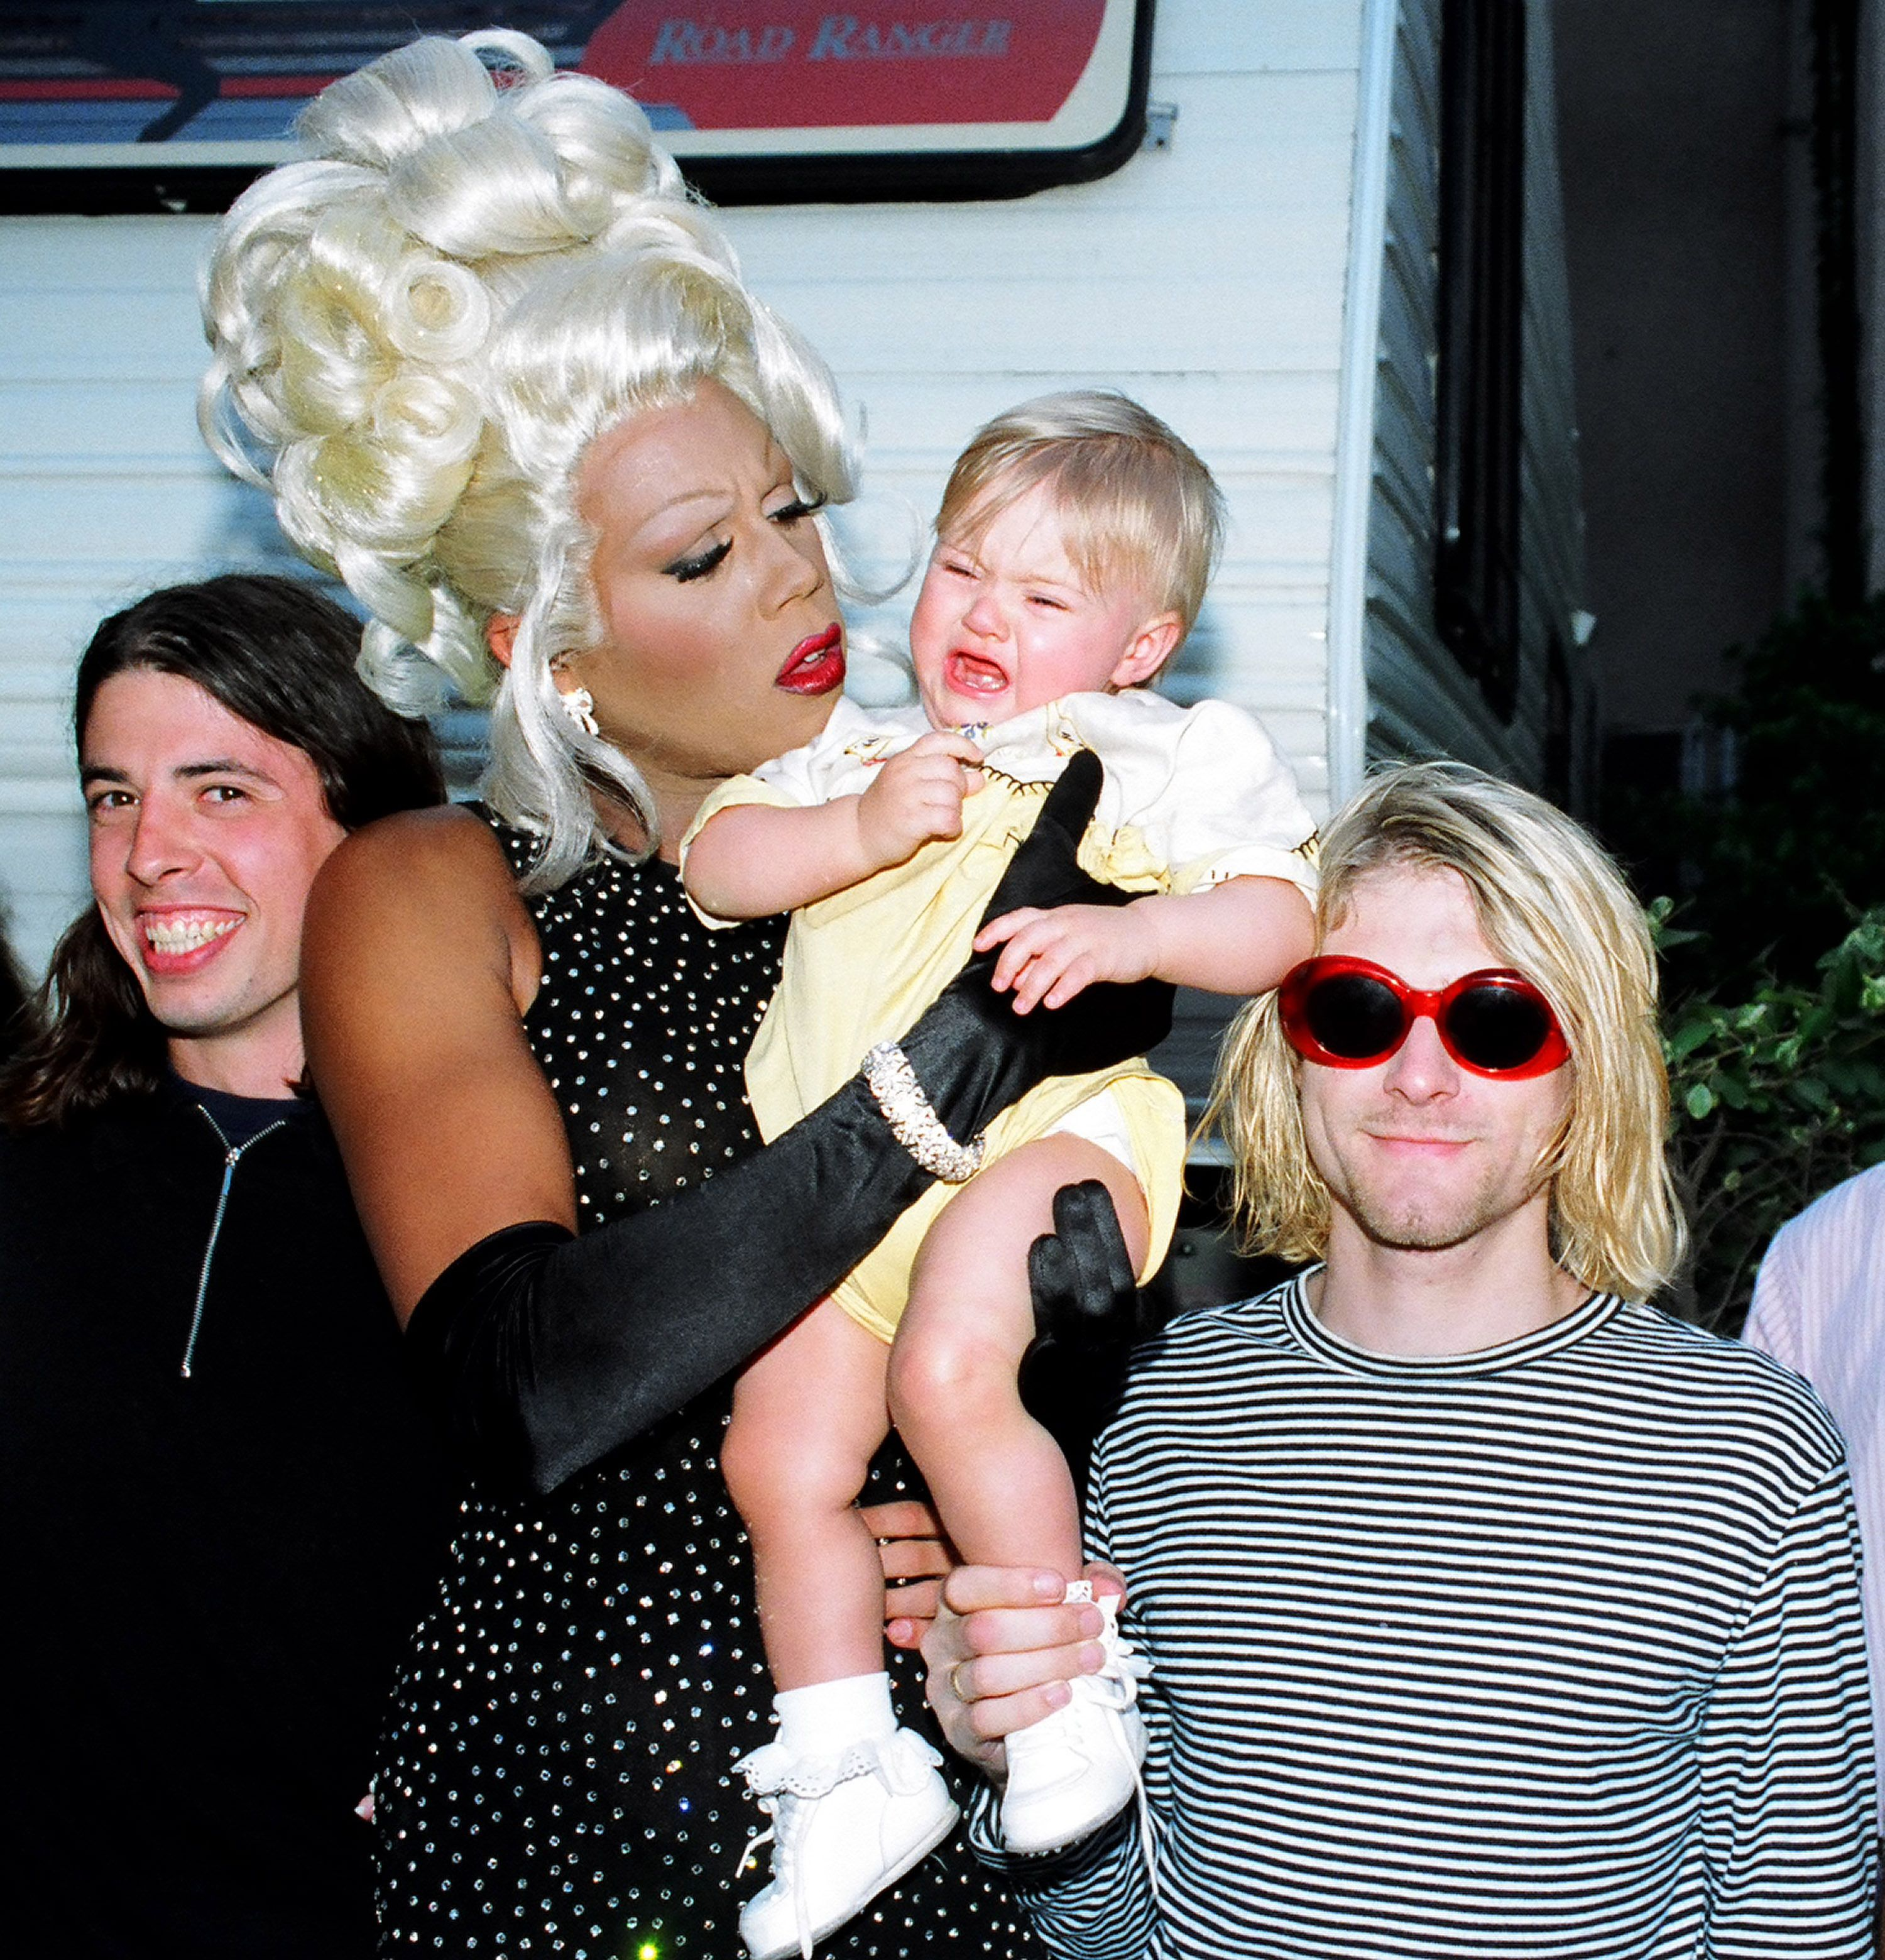 Kurt Cobain with RuPaul and Frances Bean Cobain at the 1993 MTV Video Music Awards | Source: Getty Images